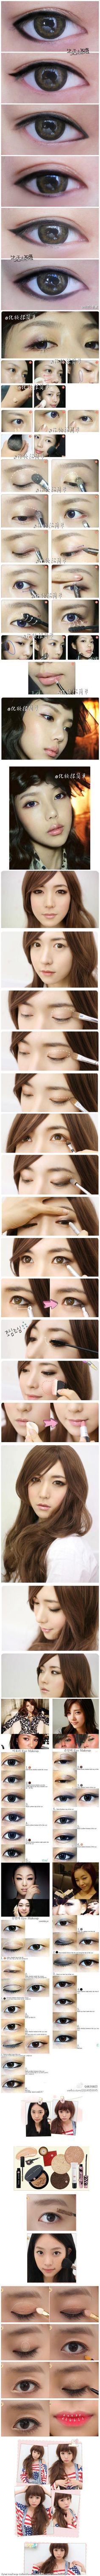 A bunch of Asian eye makeup tutorials. I really like the Korean one 3rd down from the top.